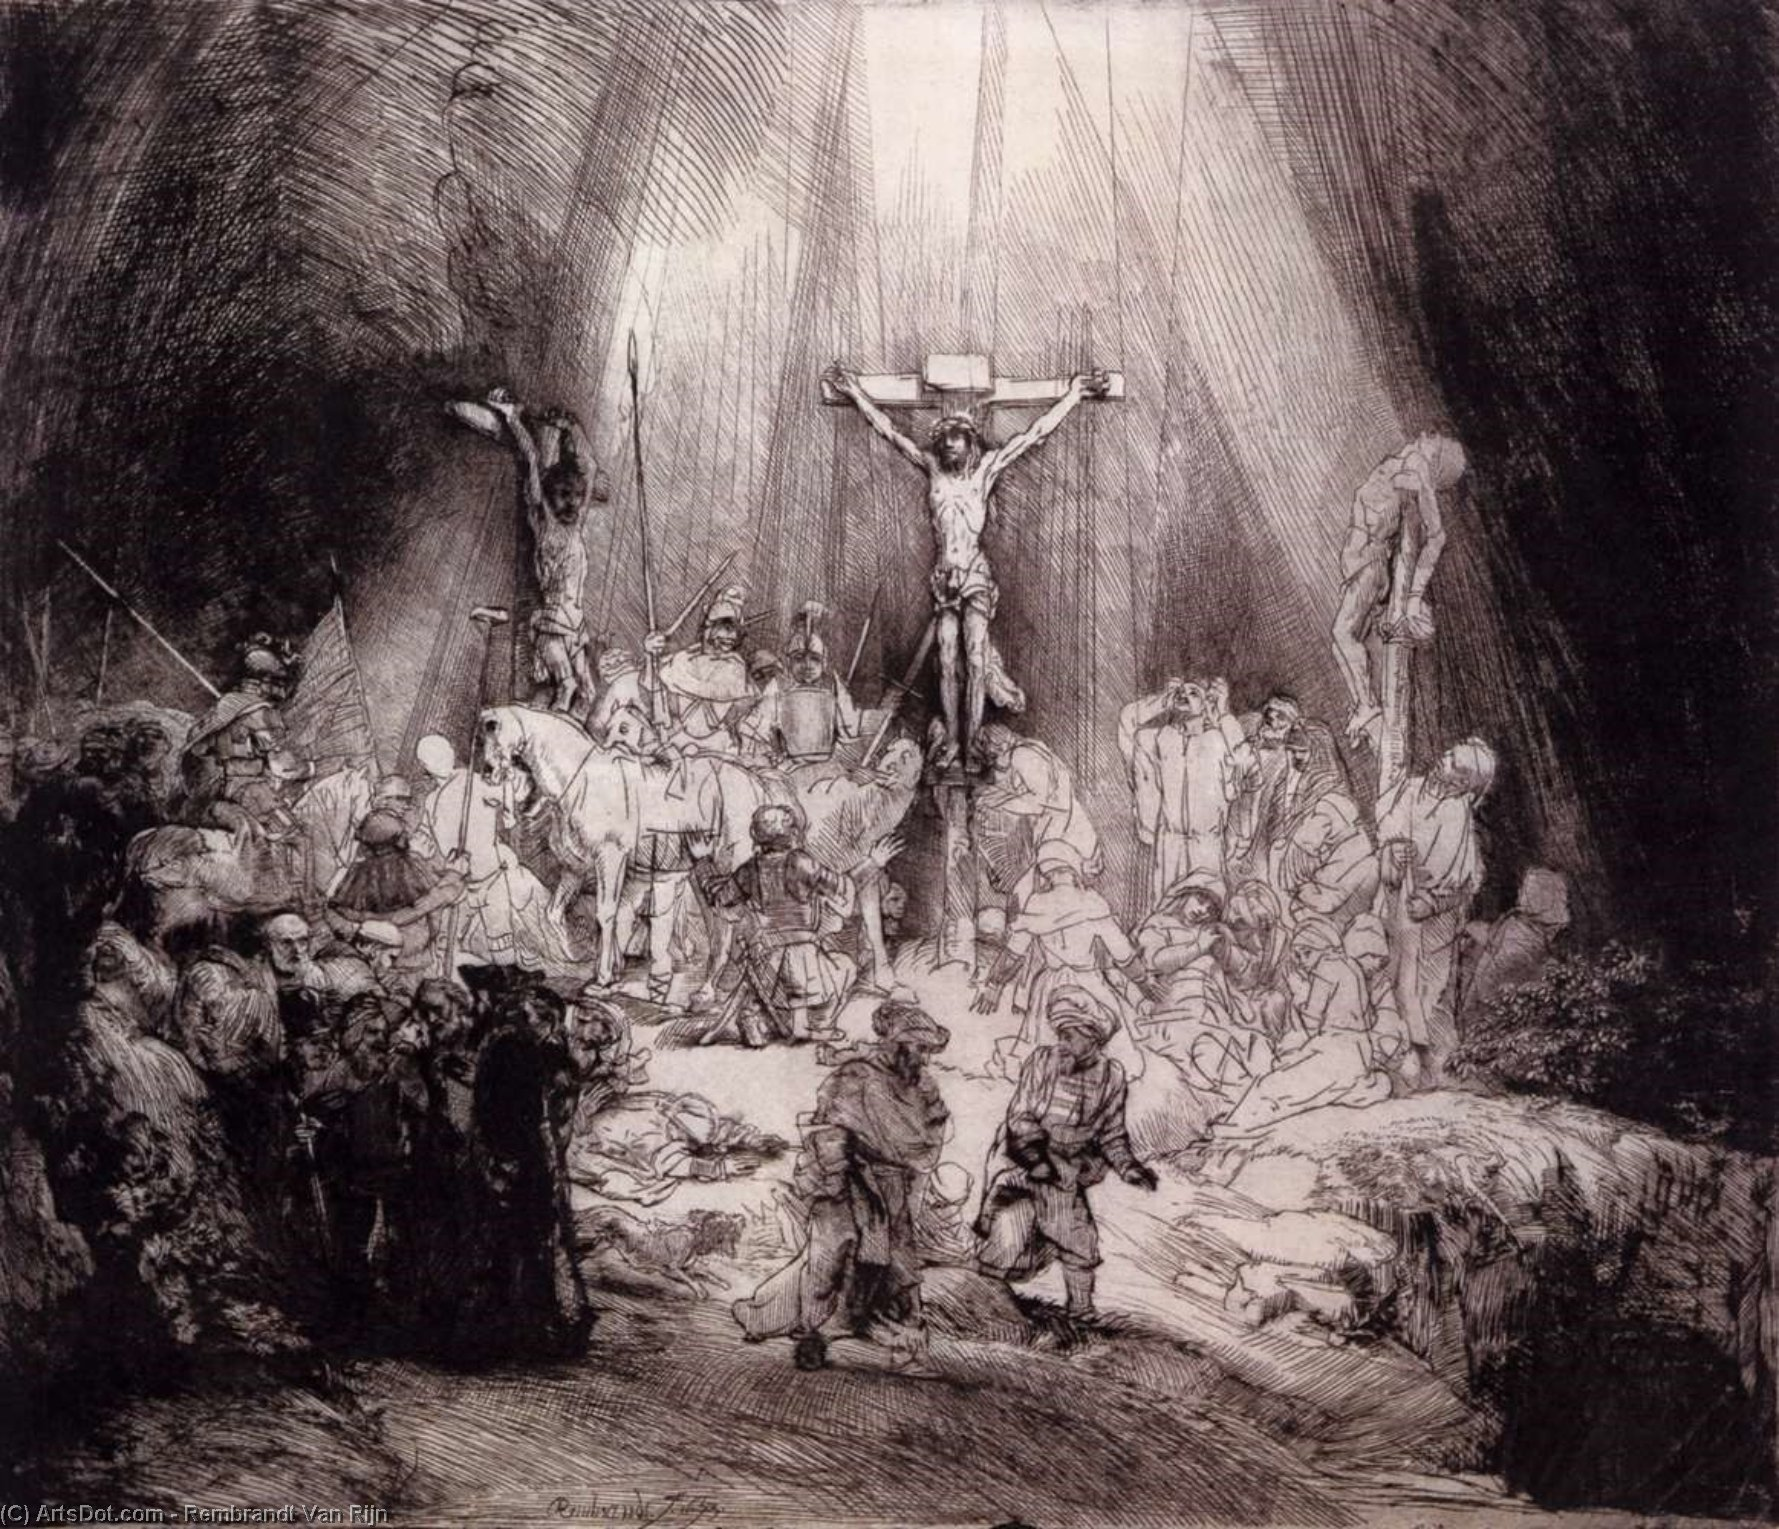 Wikioo.org - The Encyclopedia of Fine Arts - Painting, Artwork by Rembrandt Van Rijn - The Three Crosses (first state)